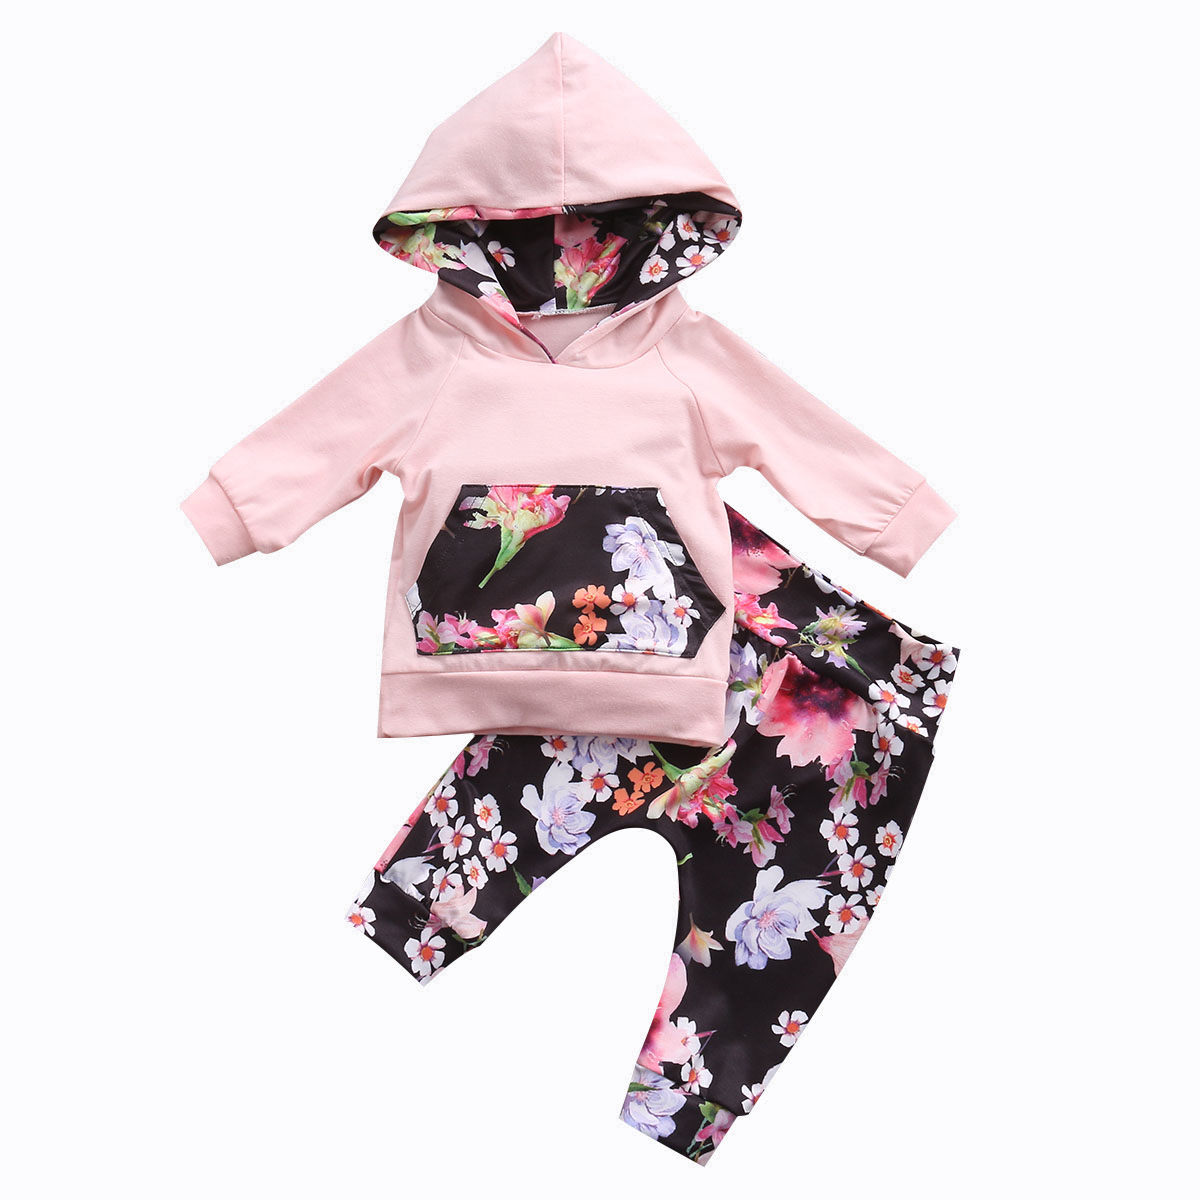 Autumn Winter Infant Newborn Baby Girls Clothes Pocket Patchwork Hooded Tops +Floral Leggings Outfit Baby Clothing Set